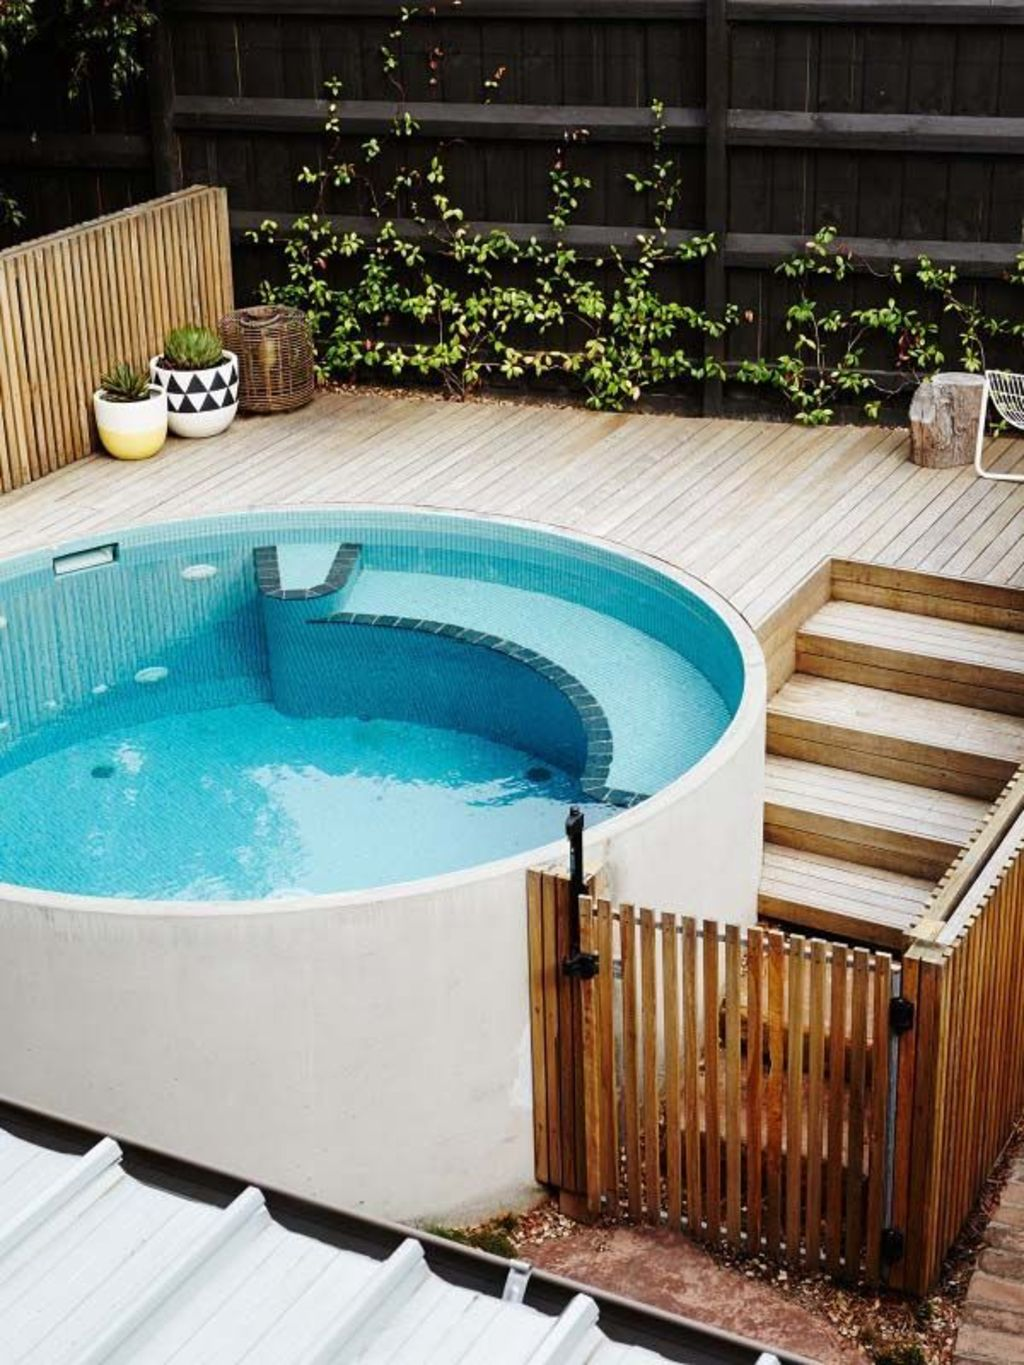 Small swimming pools made for small spaces and tight budgets Part 24